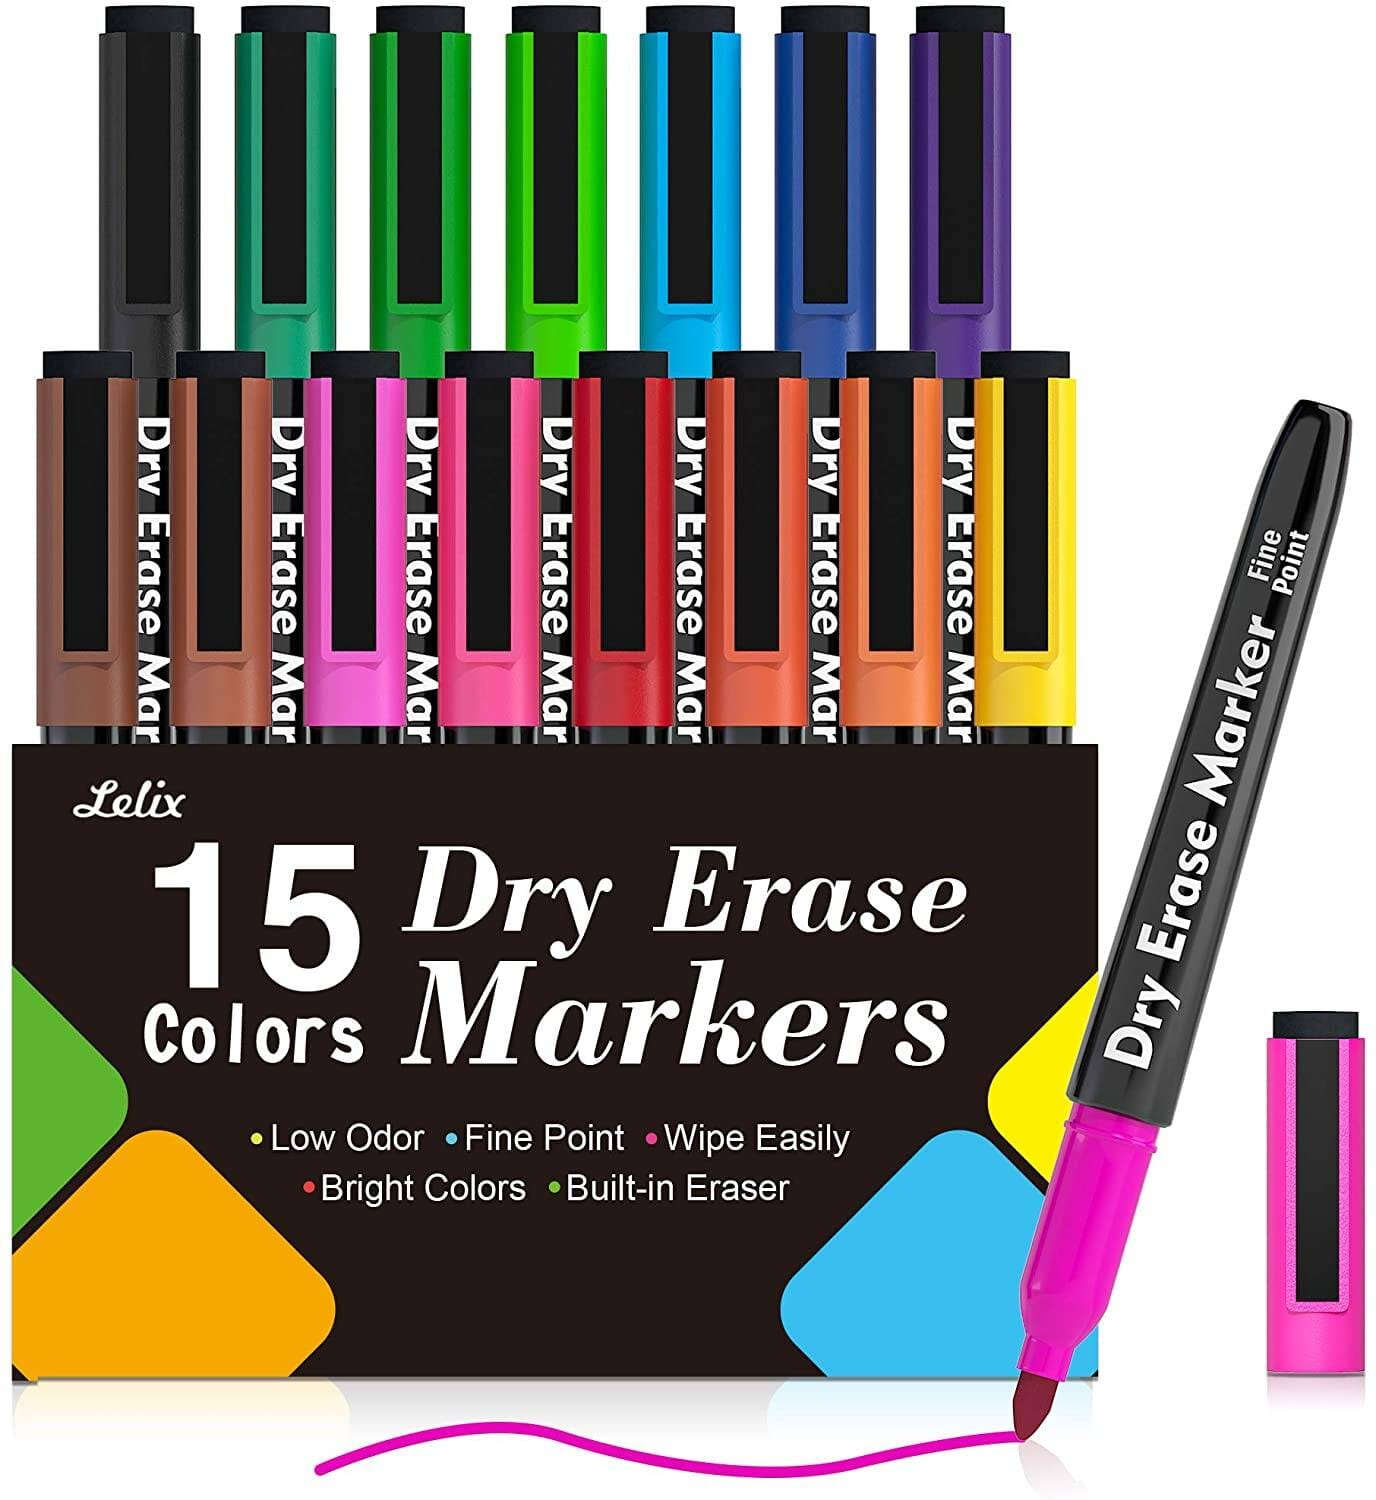 Lelix 15 Colors Magnetic Dry Erase Markers with Eraser $4.97 + Free shipping w/ Prime or $25+